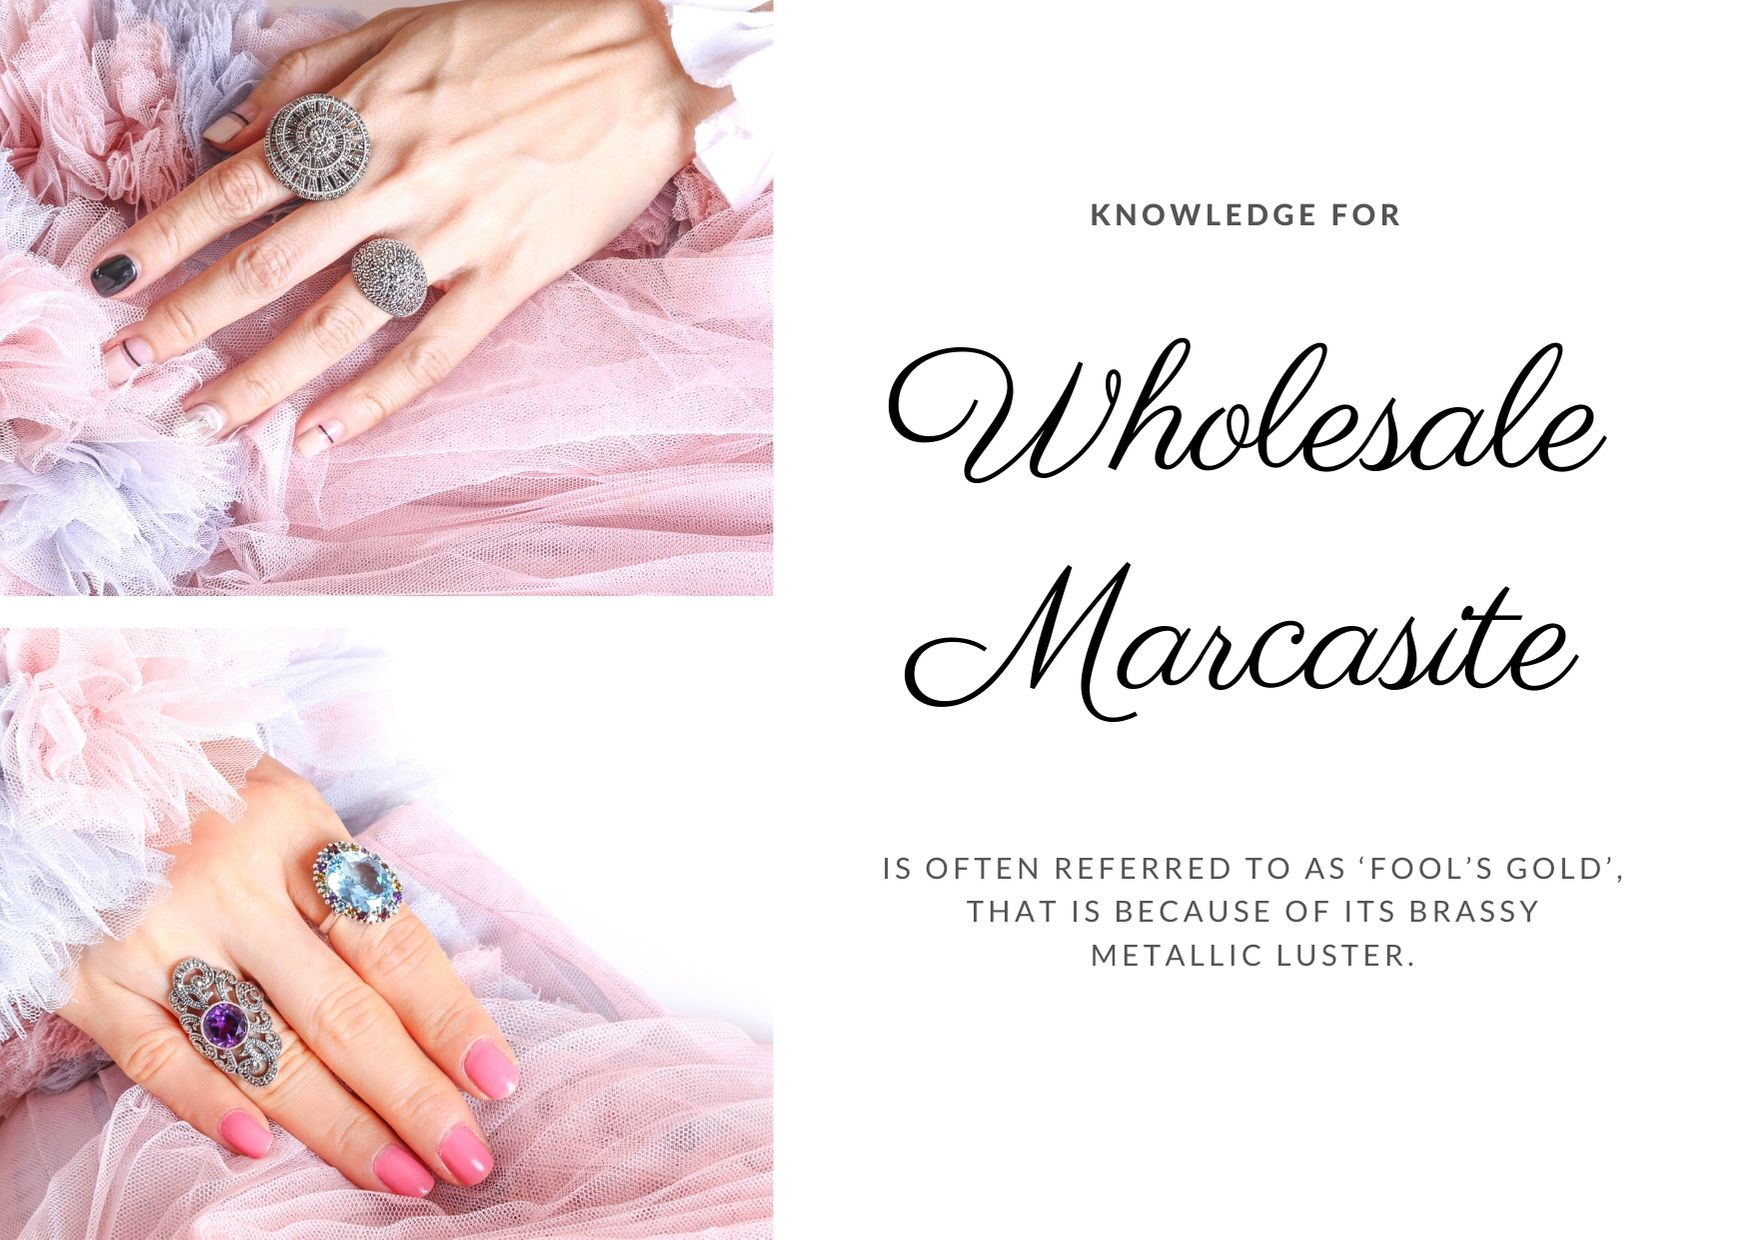 Knowledge for marcasite jewelry